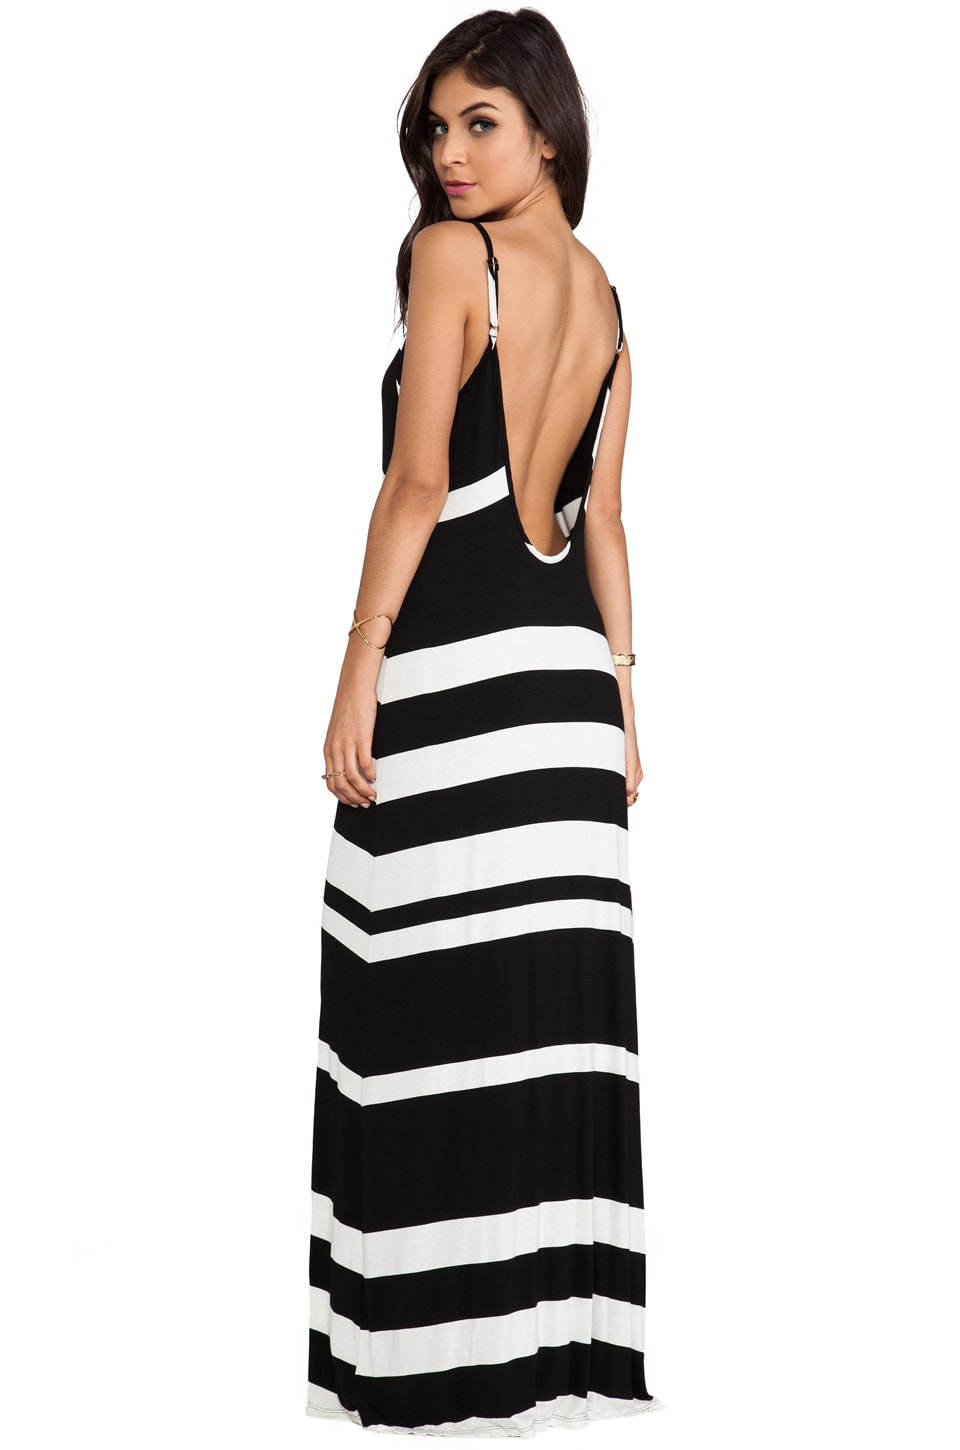 WOODLEIGH Liberity Striped Maxi in Black/White Stripe